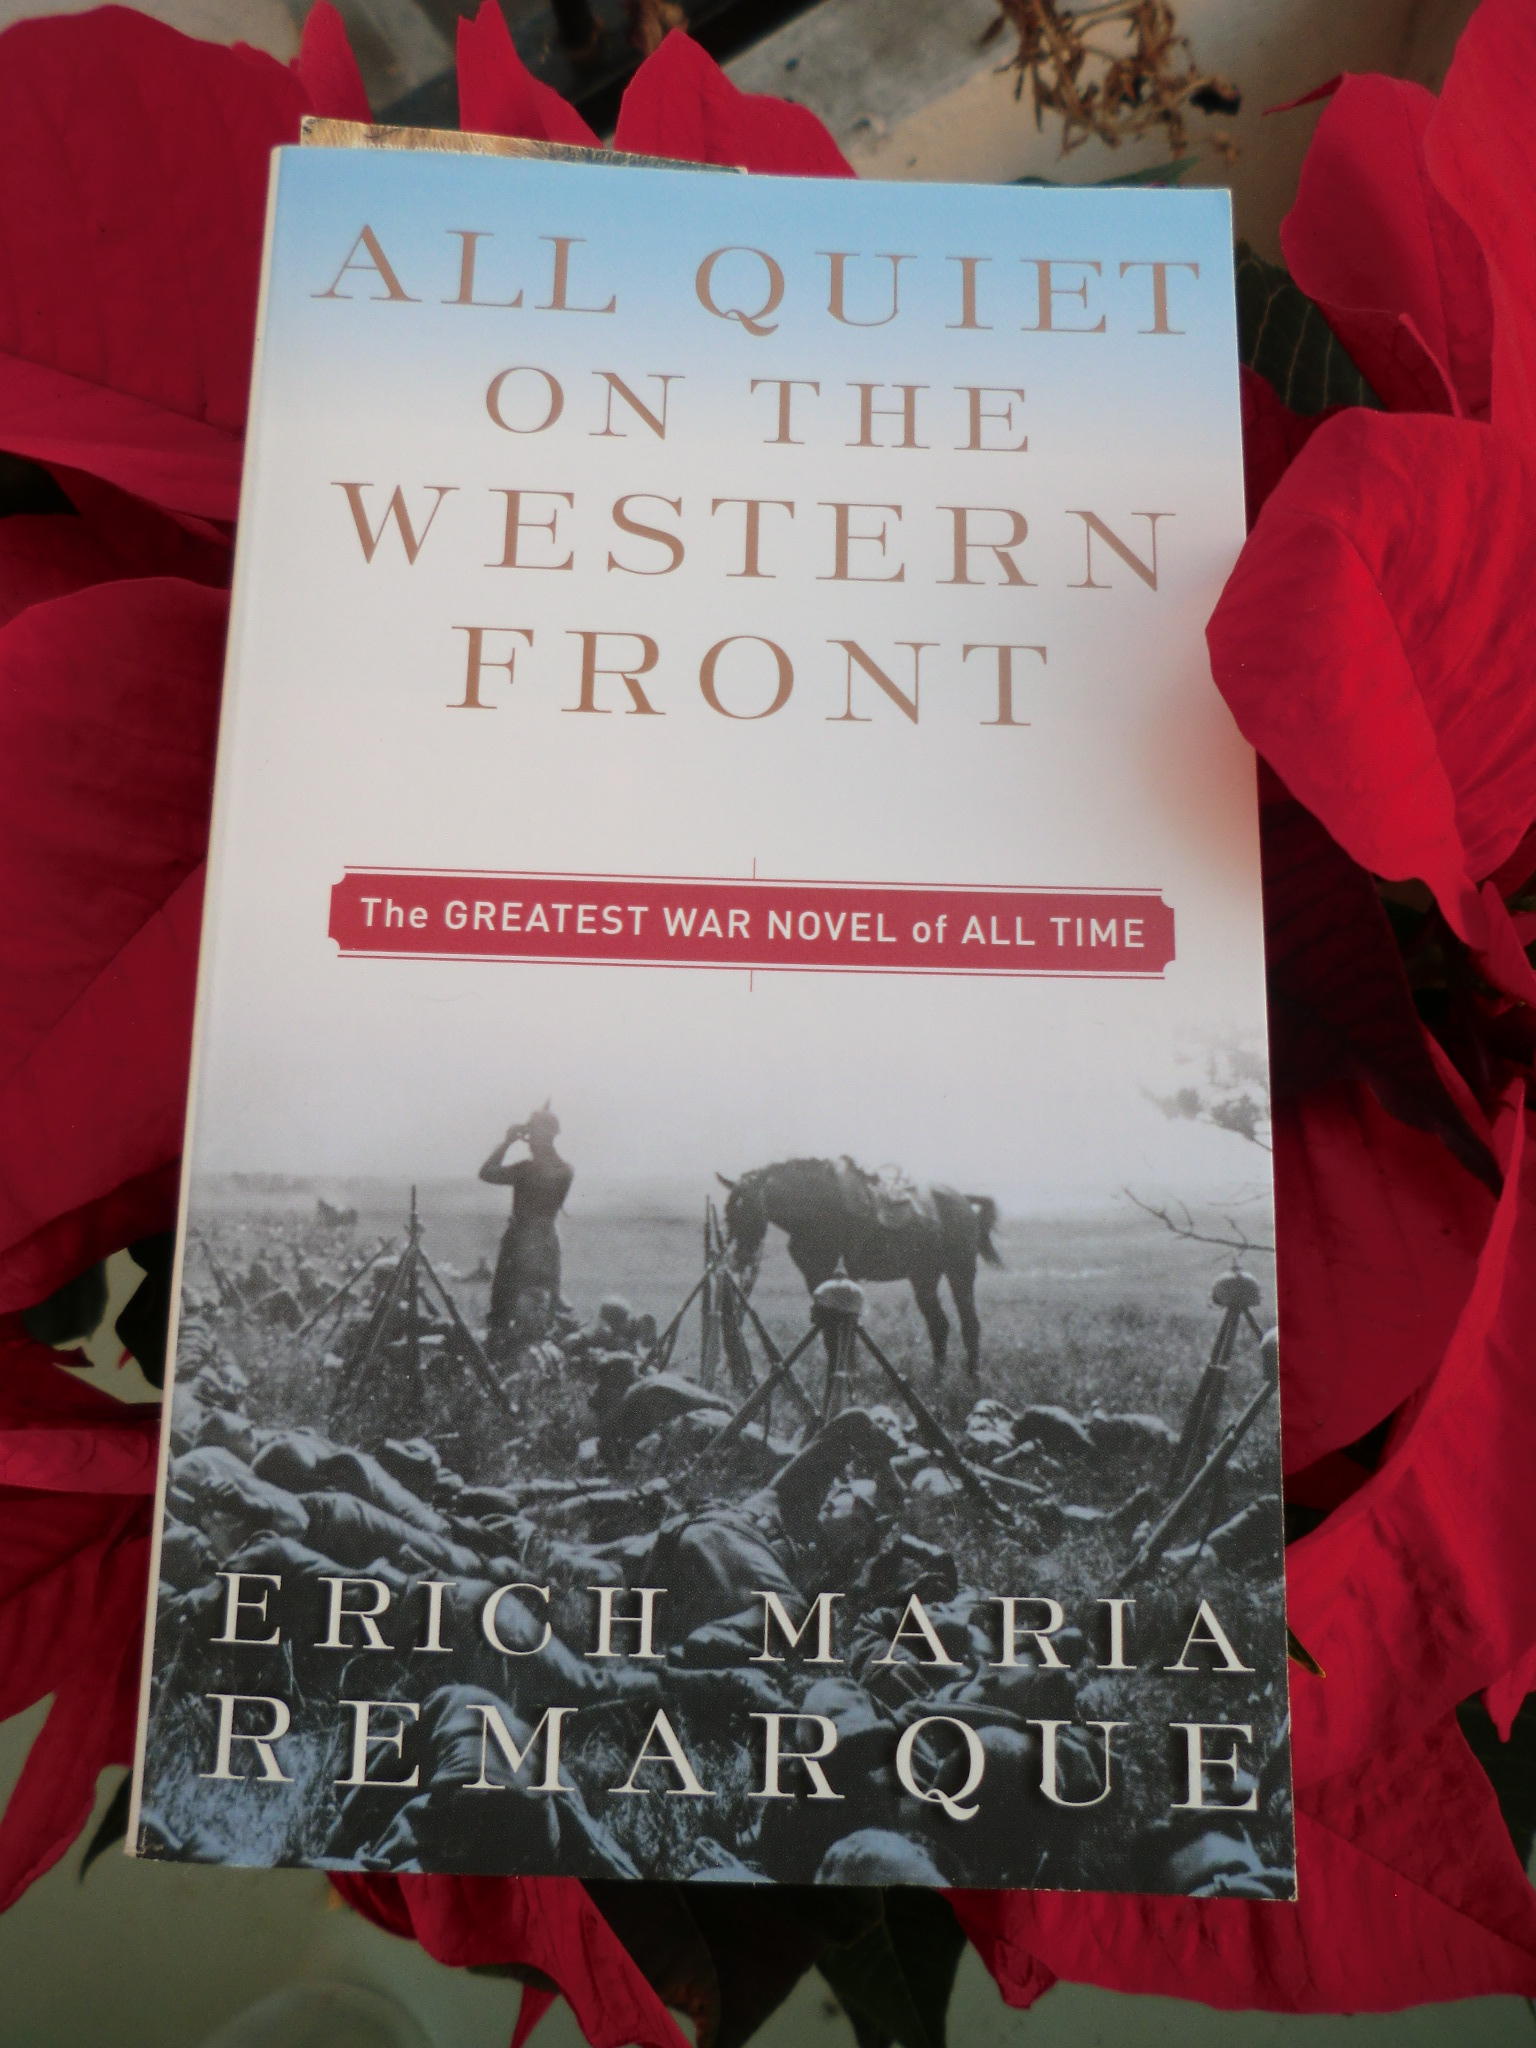 a comparative analysis of all quiet on the western front and johnny got his gun by erich maria remar Not as melodramatic as johnny got his gun nor even all quiet on the to all quiet on the western front novel based on his world war i experiences fear.